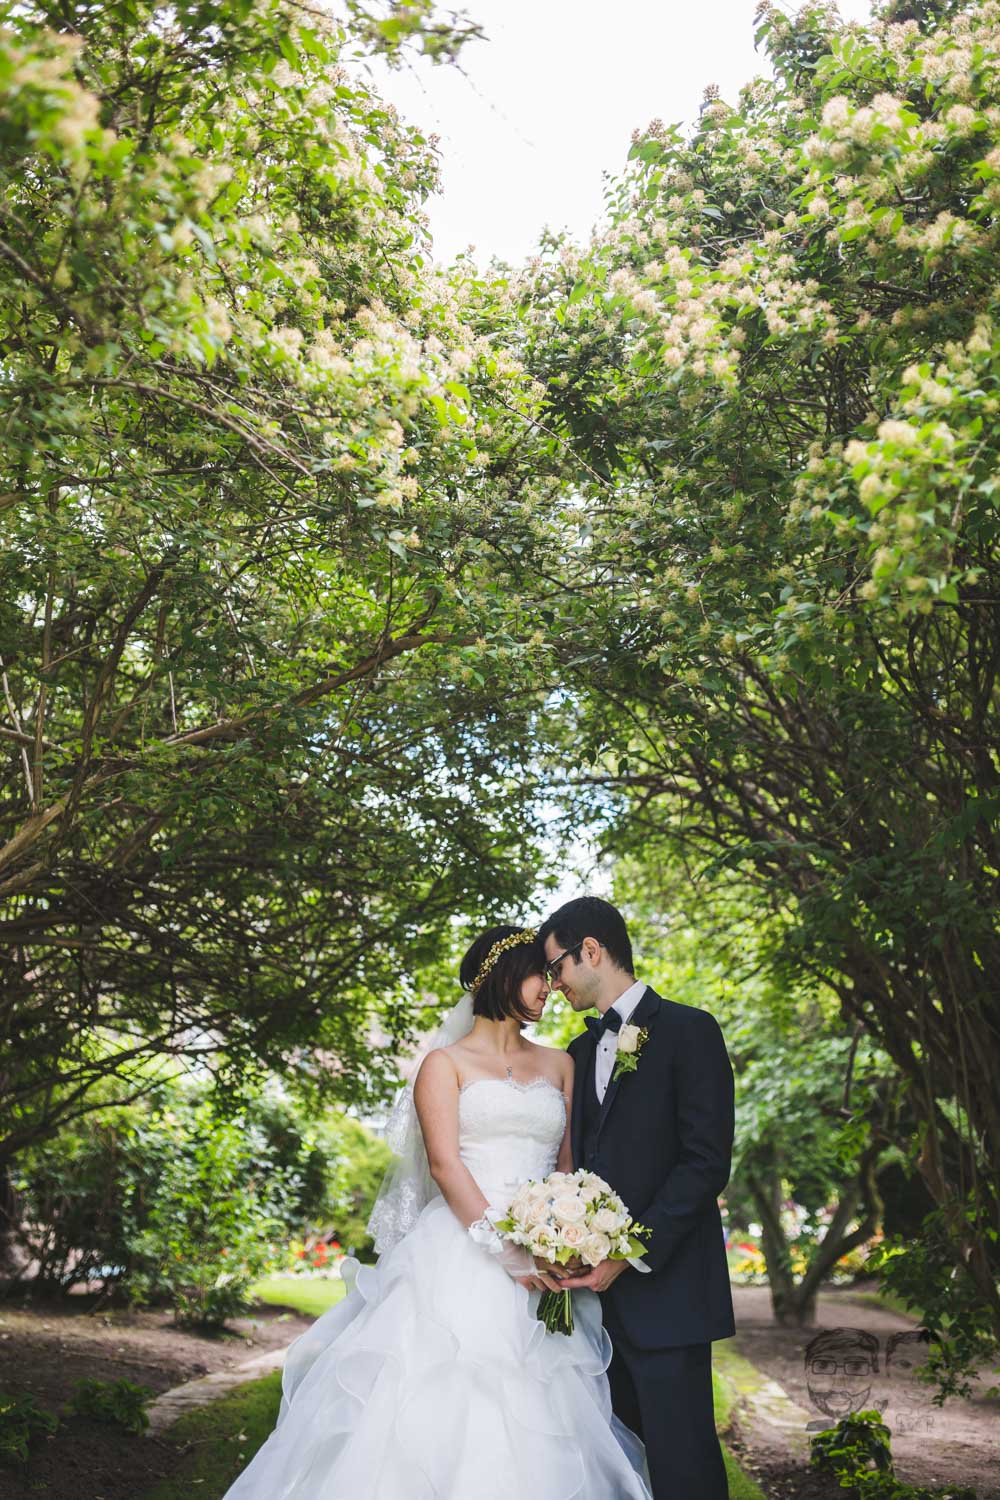 Estates of Sunnybrook-Toronto Photographer-Jono&Laynie60.jpg